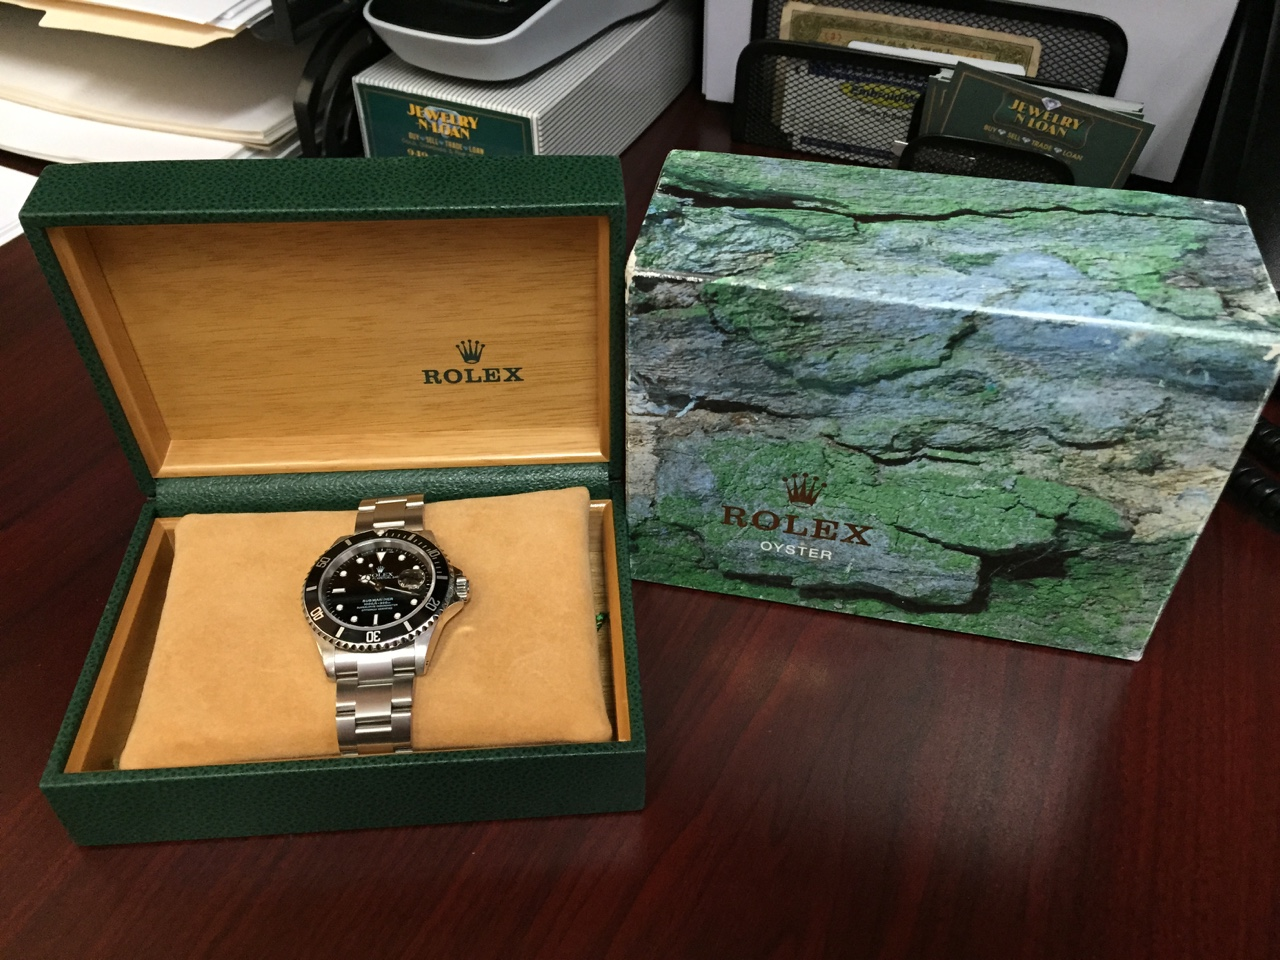 Classic Rolex Submariner with Box & Papers - $4,500